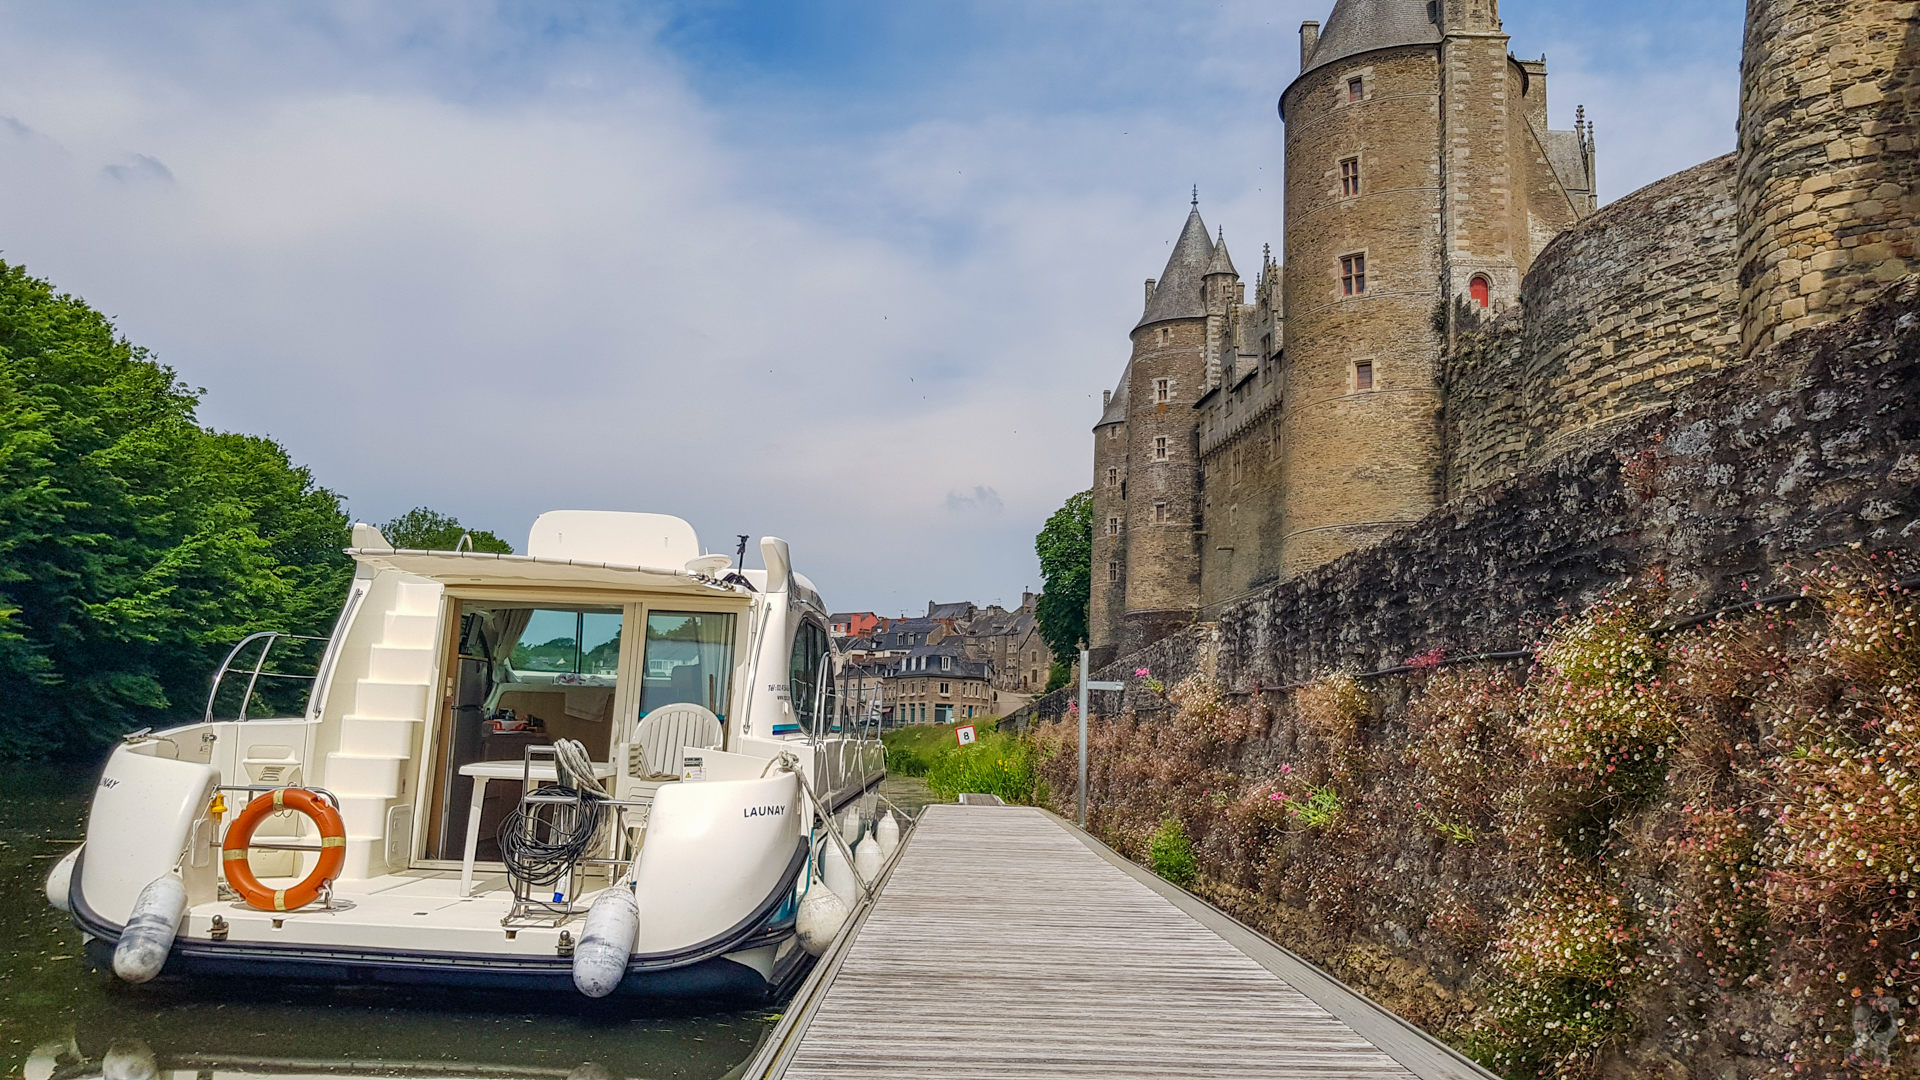 Anleger in Josselin-